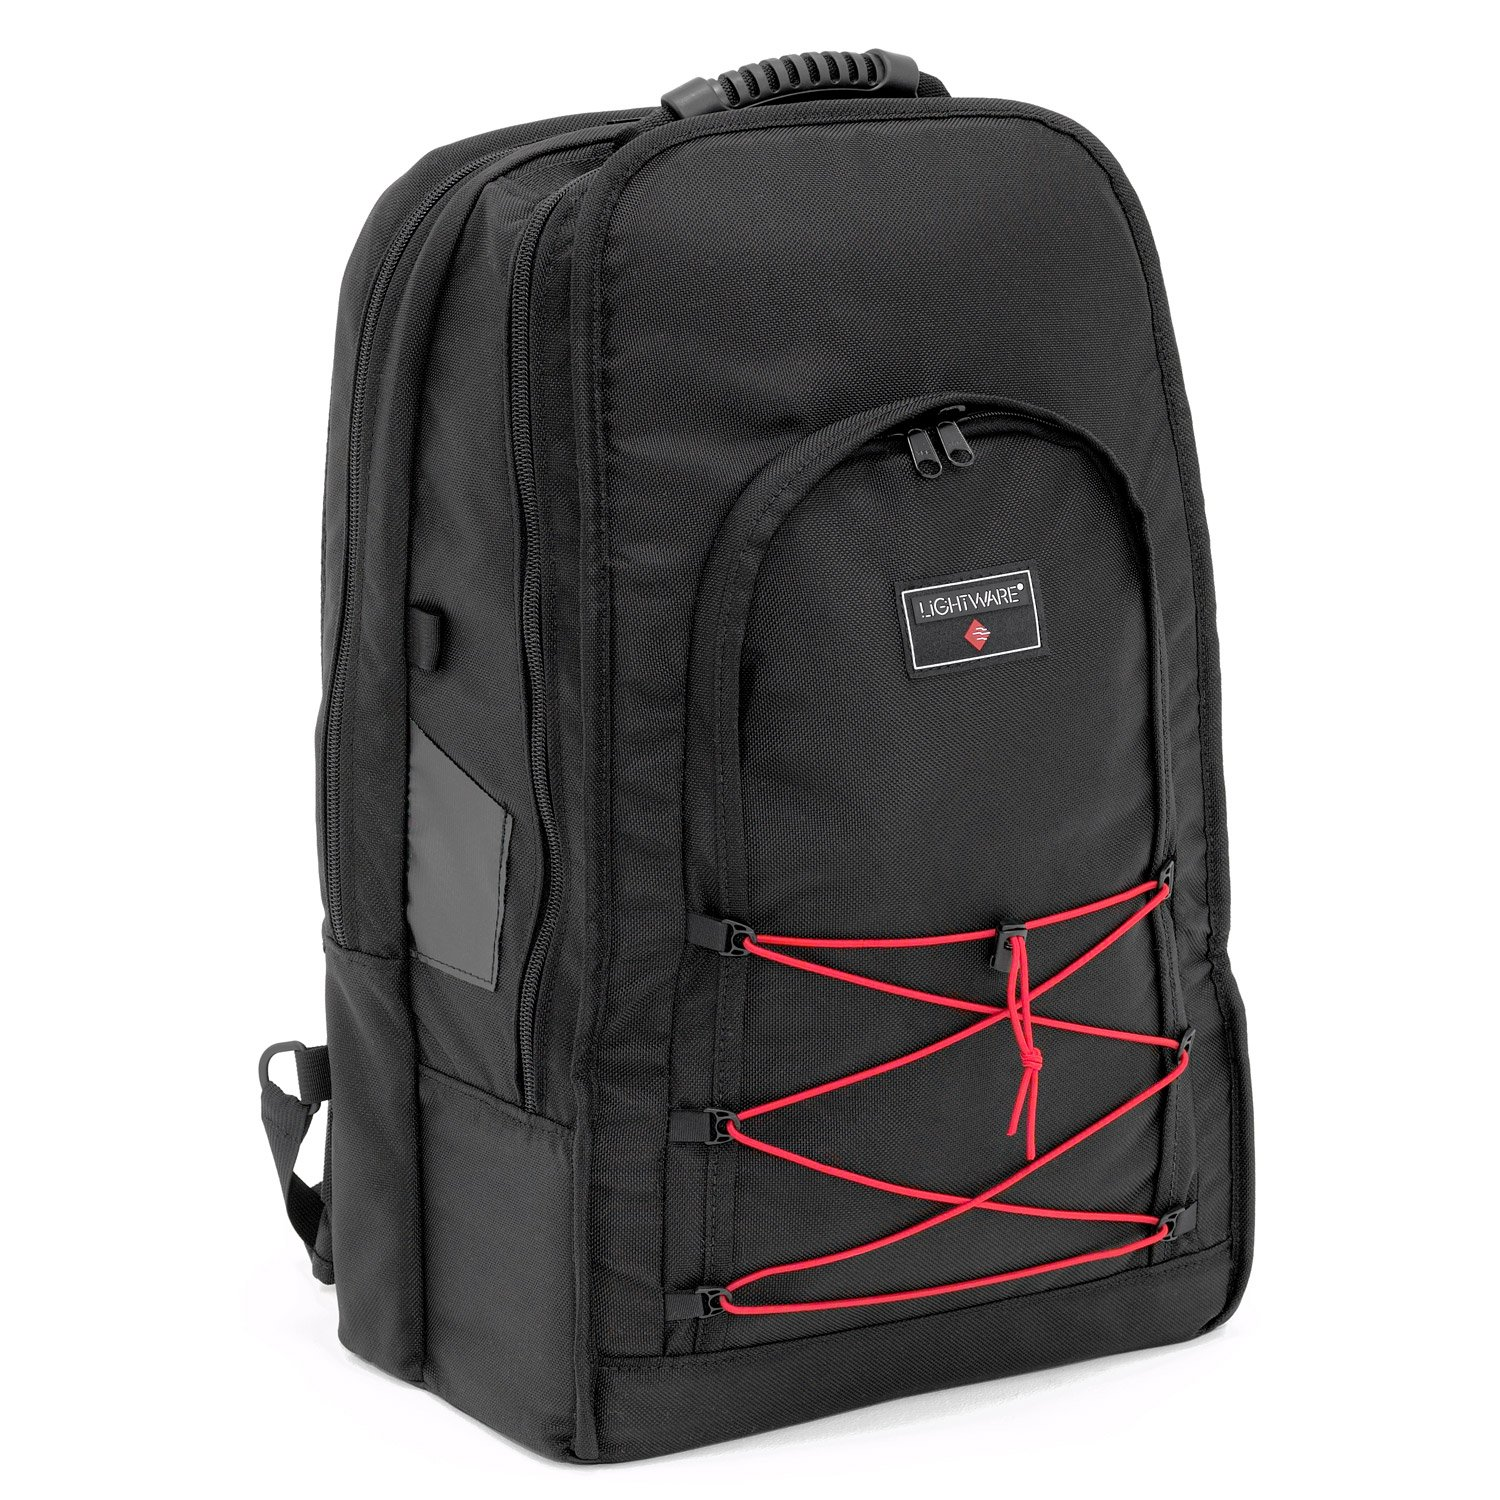 BP2214 Digital BackPack